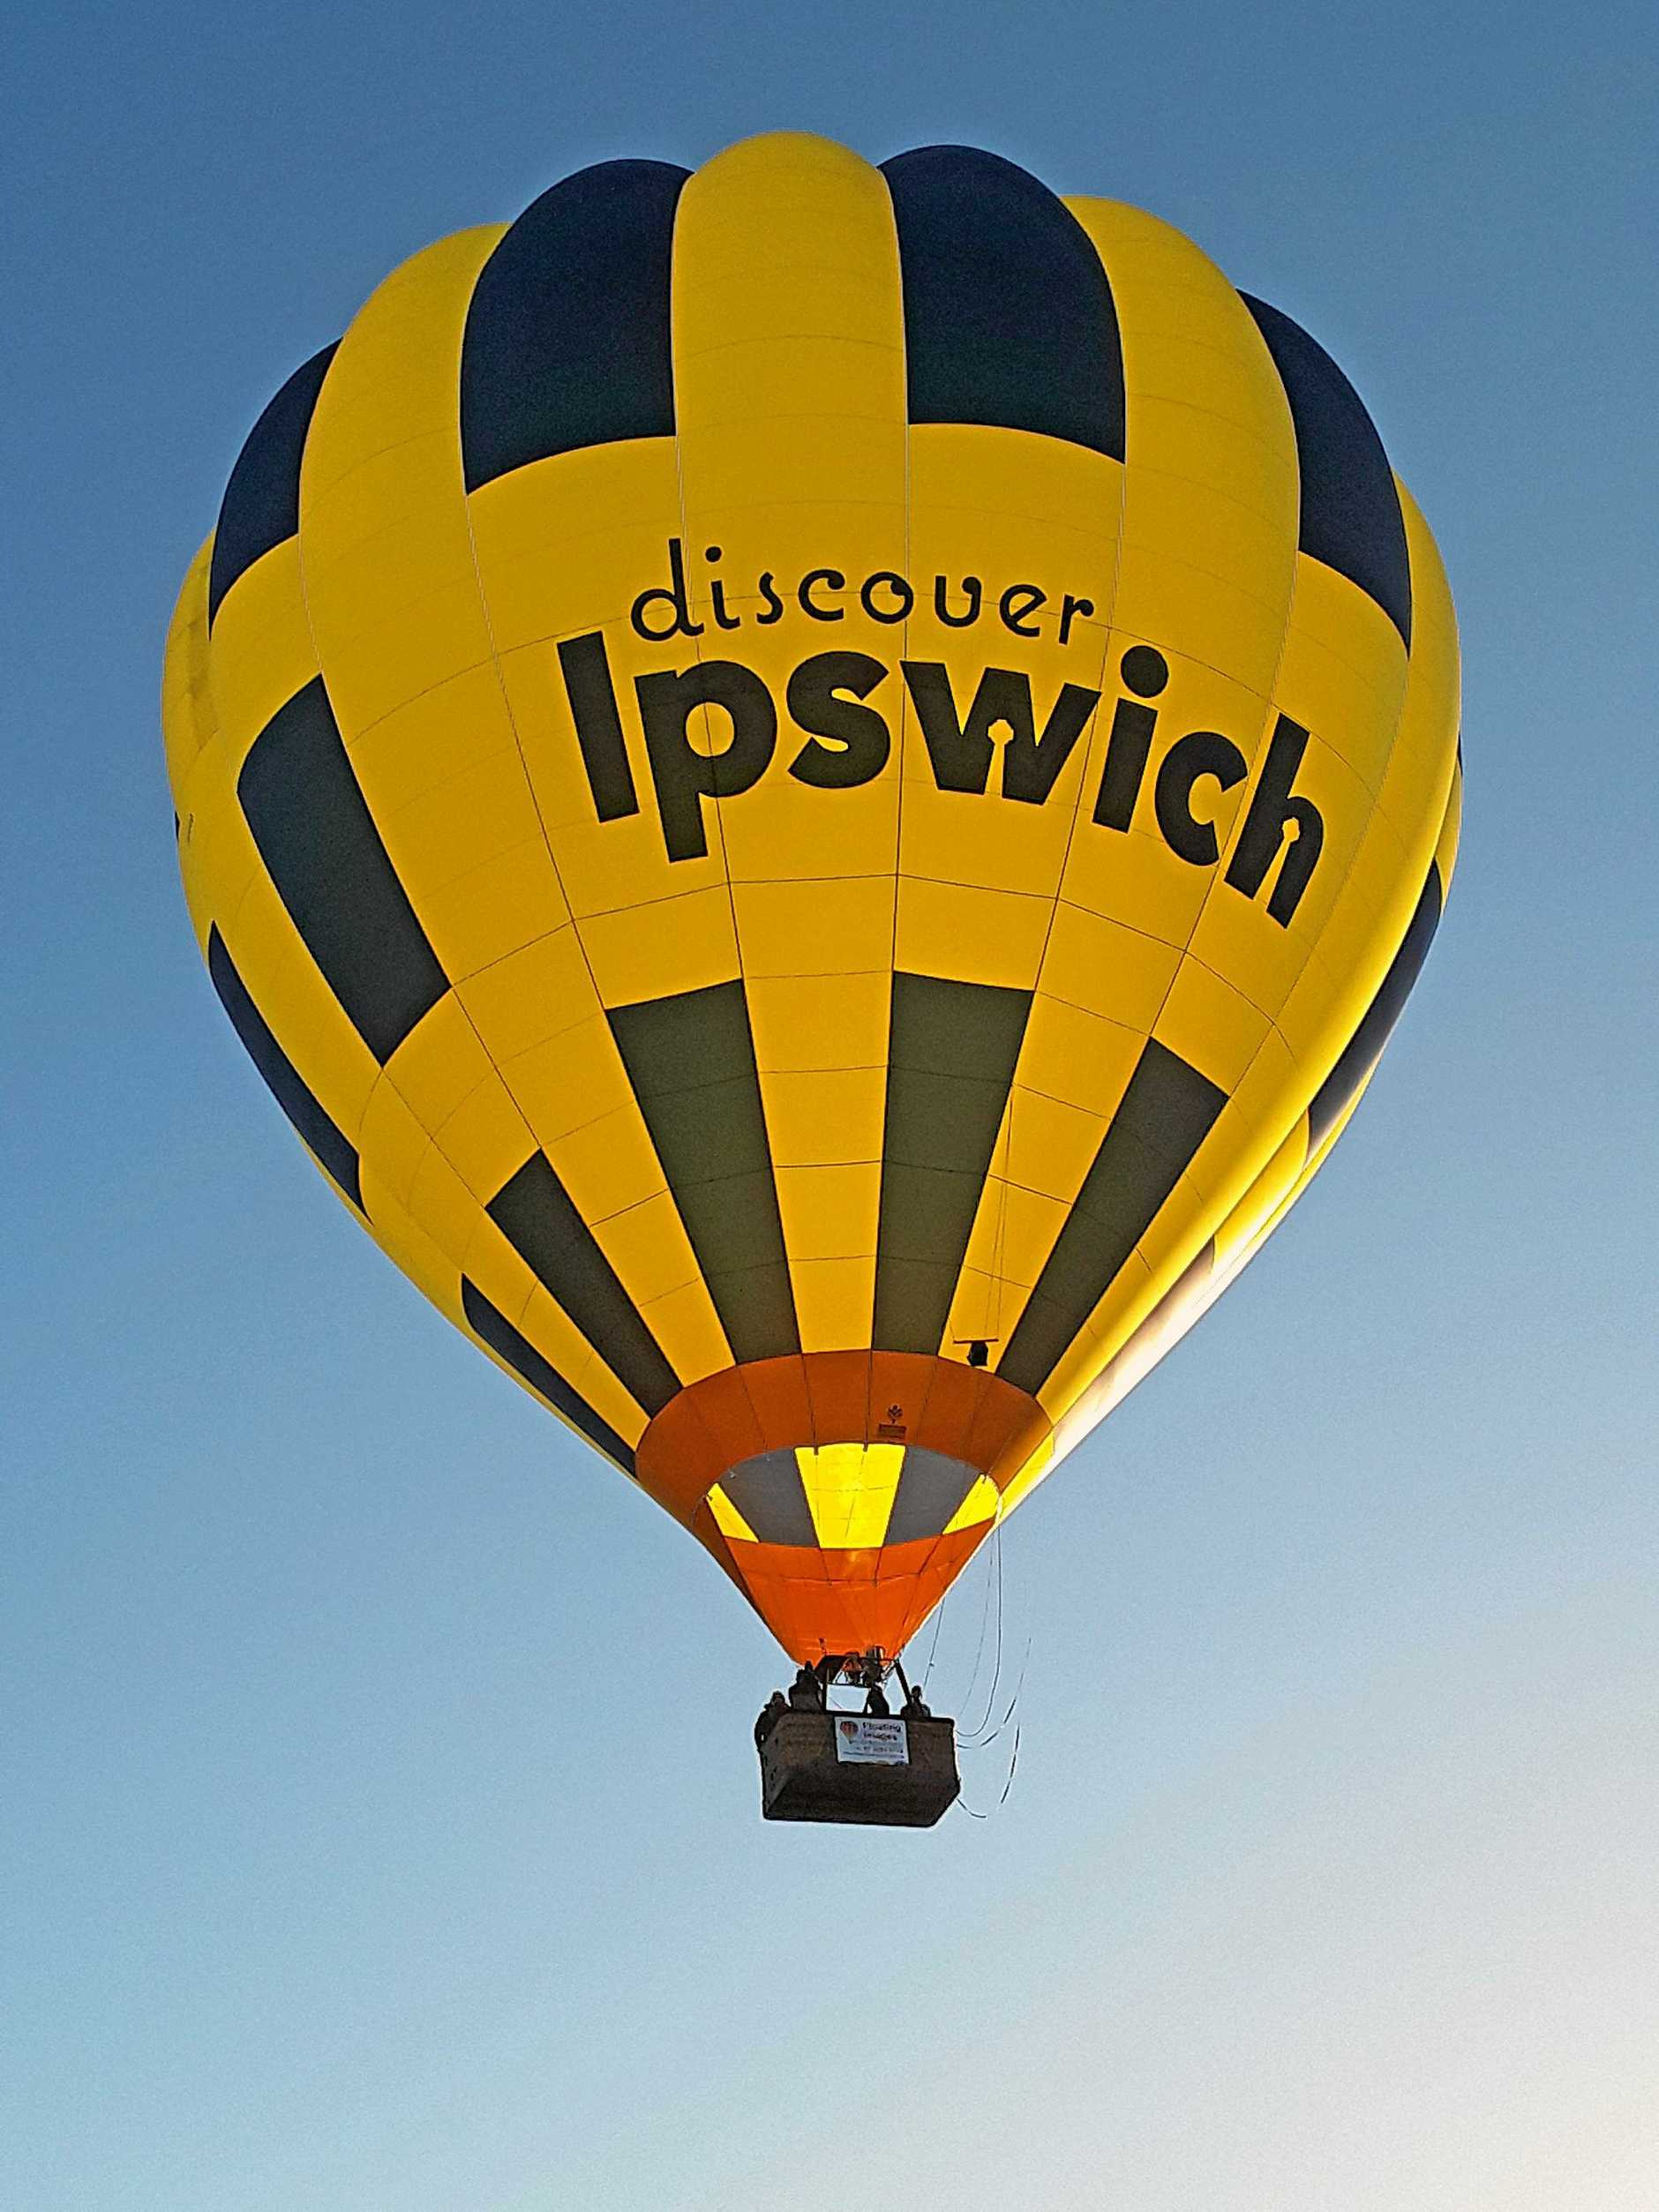 The Discover Ipswich balloon is promoting the city.